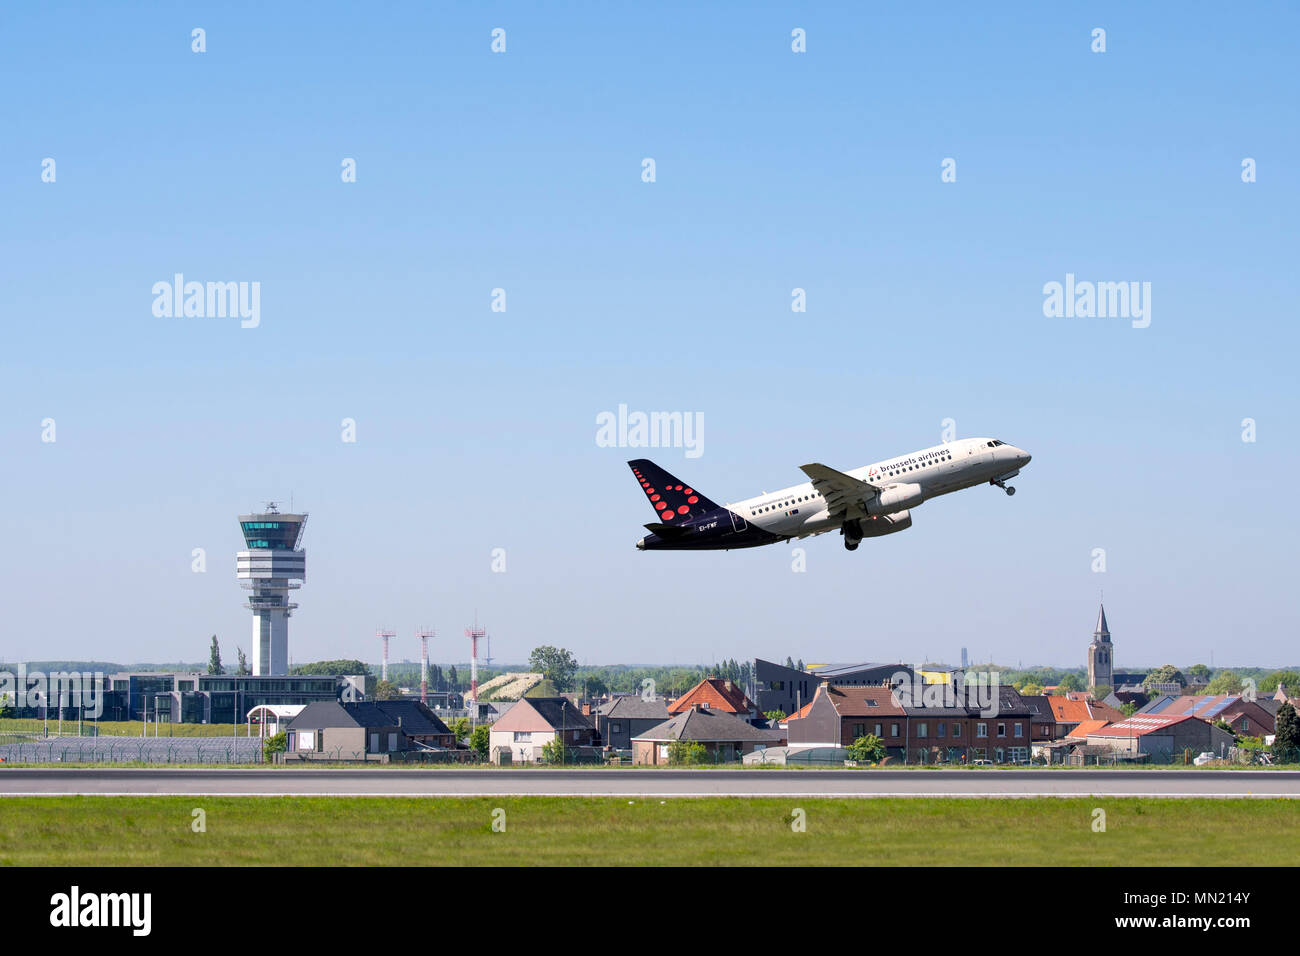 Control tower of Brussels Airport and the village Steenokkerzeel behind runway of Brussels Airlines while airplane is taking off, Zaventem, Belgium - Stock Image